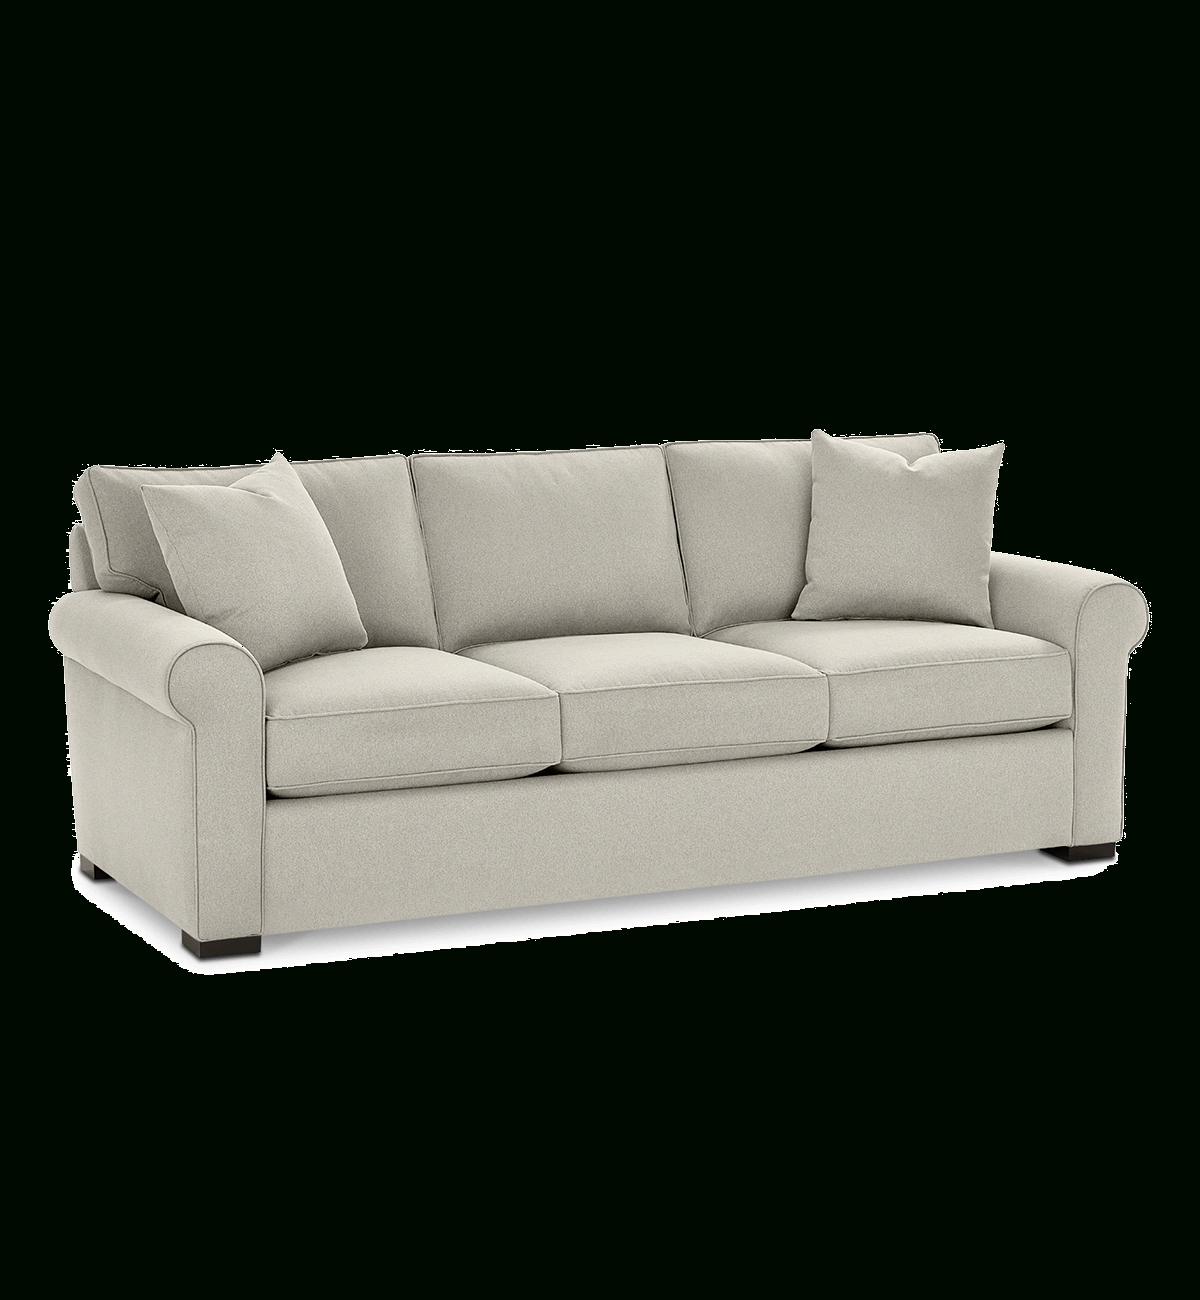 Leather Couches And Sofas – Macy's Within Macys Leather Sofas (View 5 of 10)